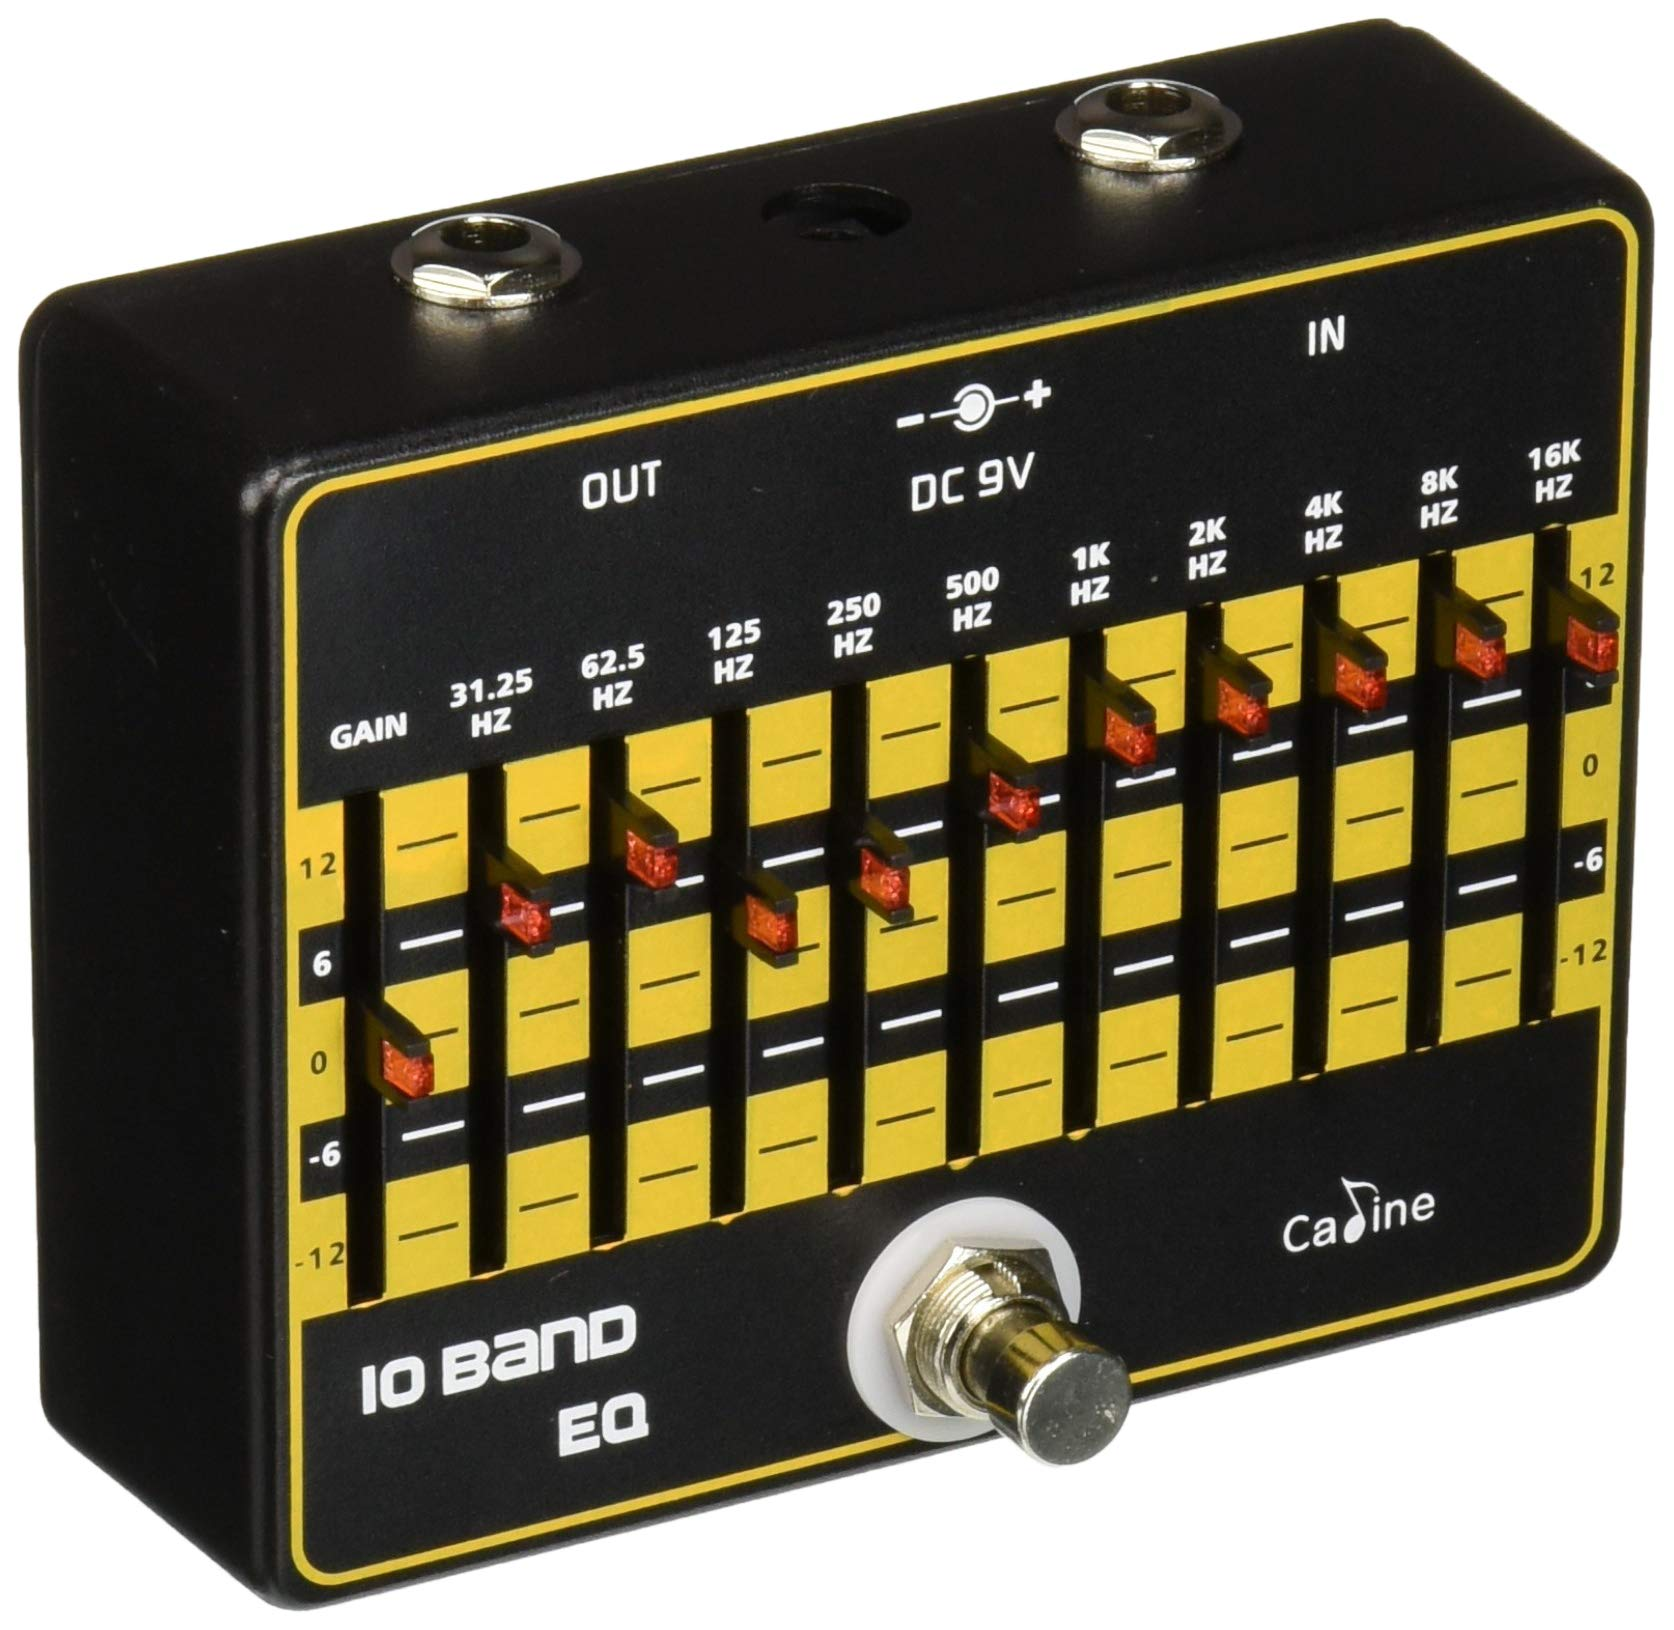 Caline USA CP 24 10 Band equalizer